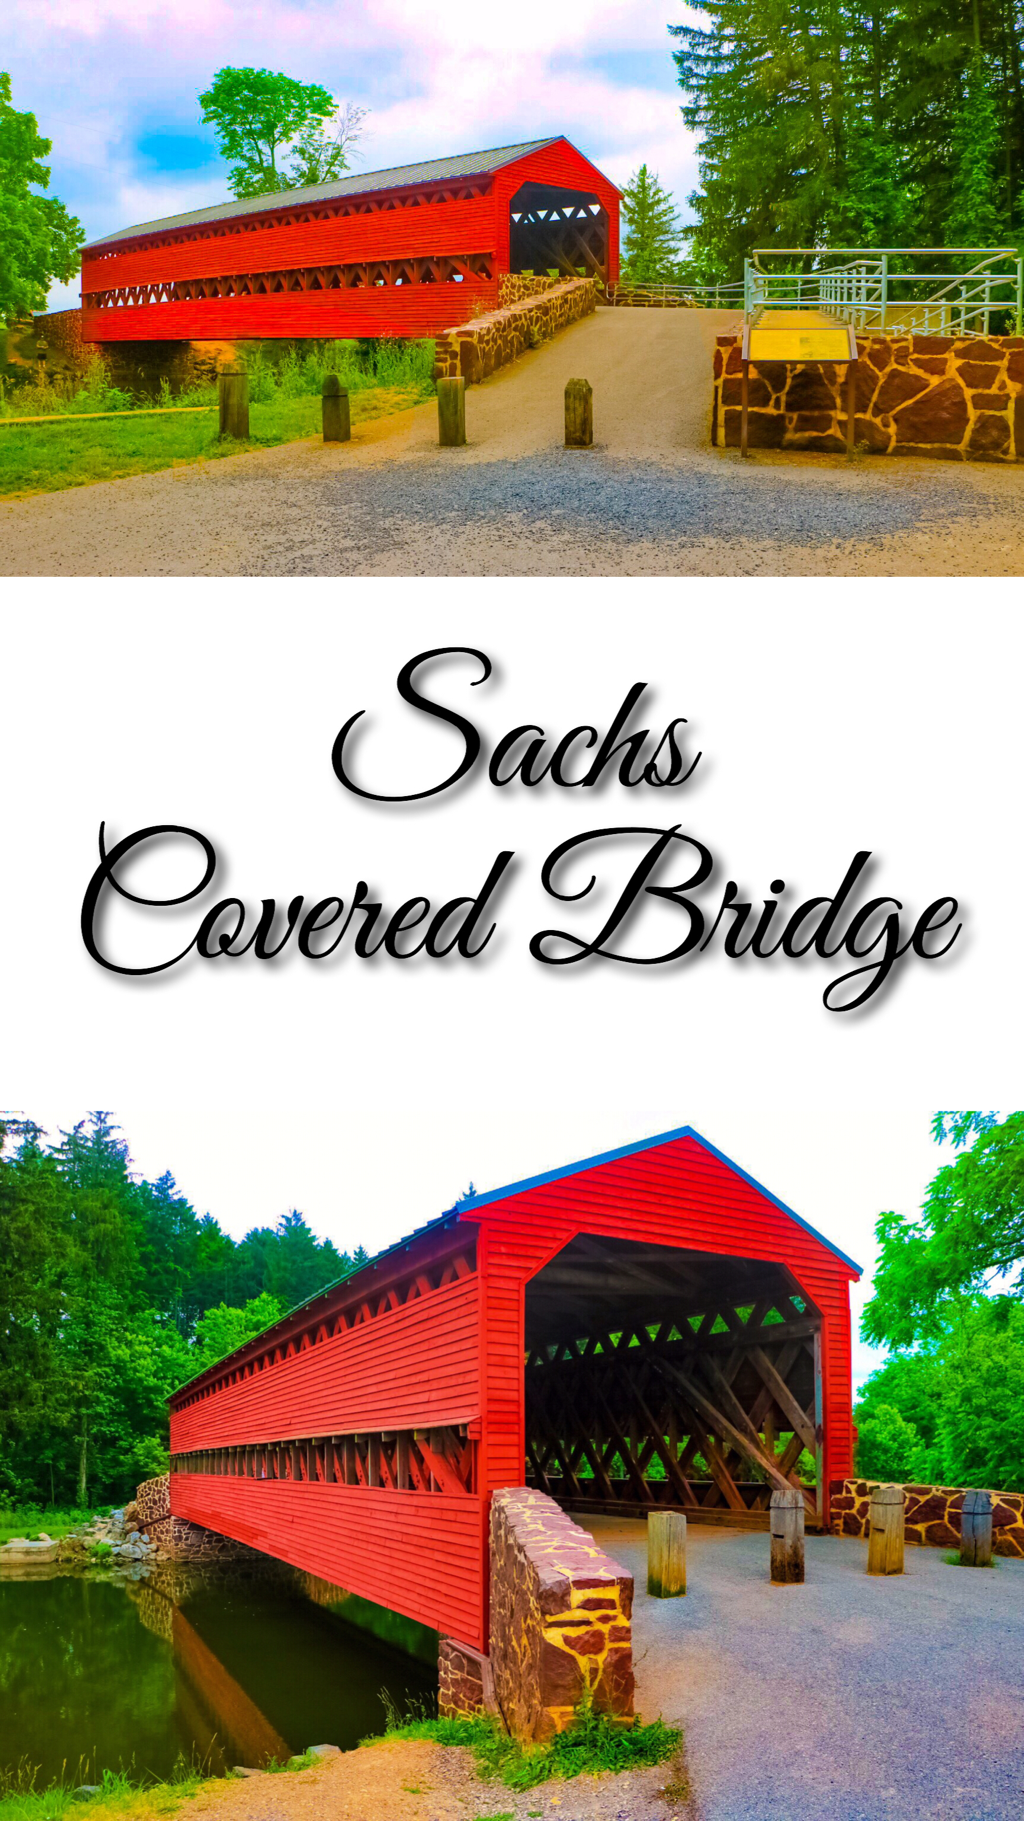 Sachs Covered Bridge ~ Gettysburg Pennsylvania